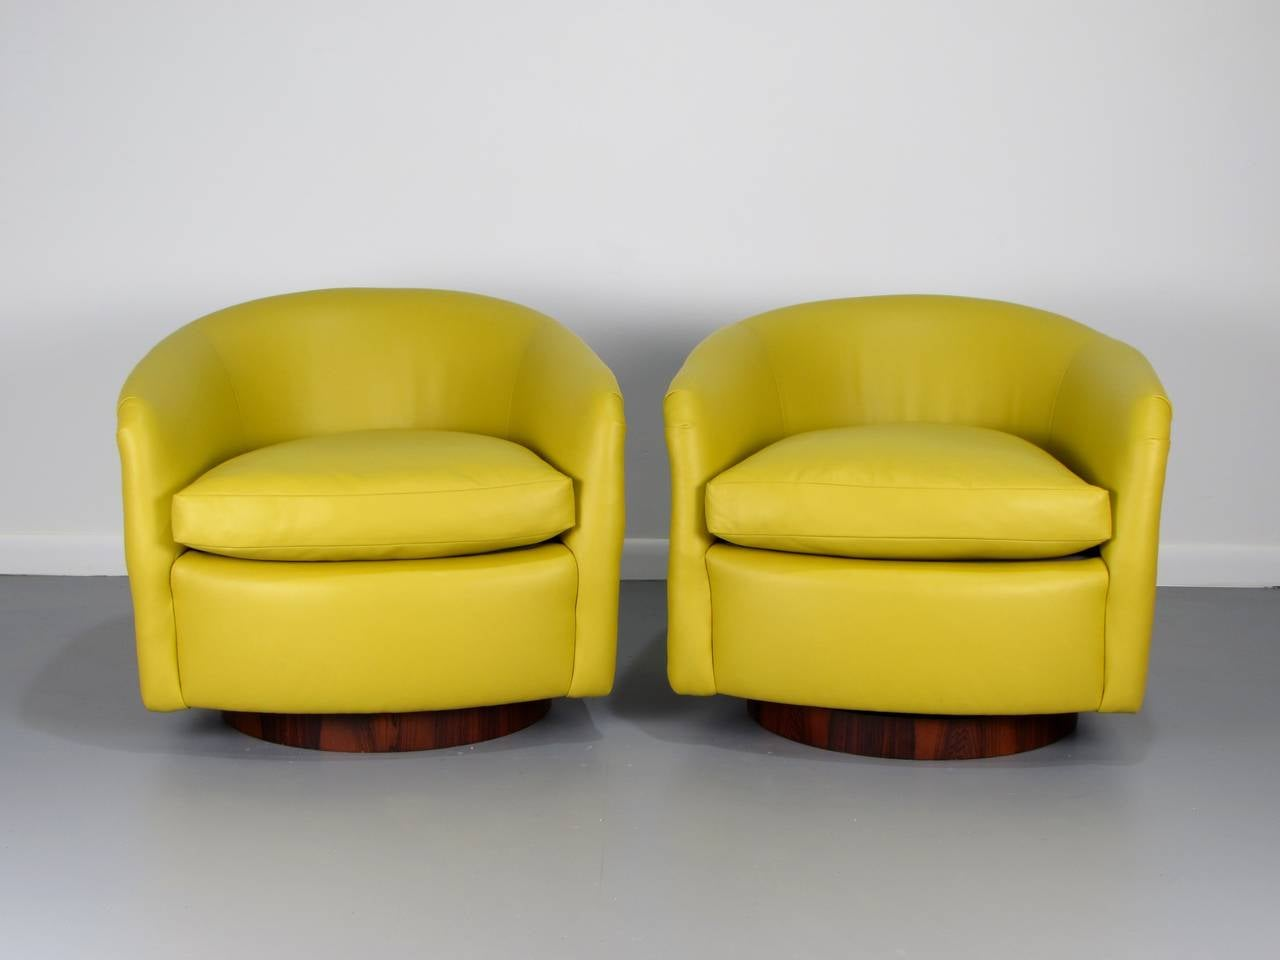 green velvet swivel chair set of 4 outdoor cushions rare rosewood wrapped tub chairs in leather by milo baughman, 1970s at 1stdibs